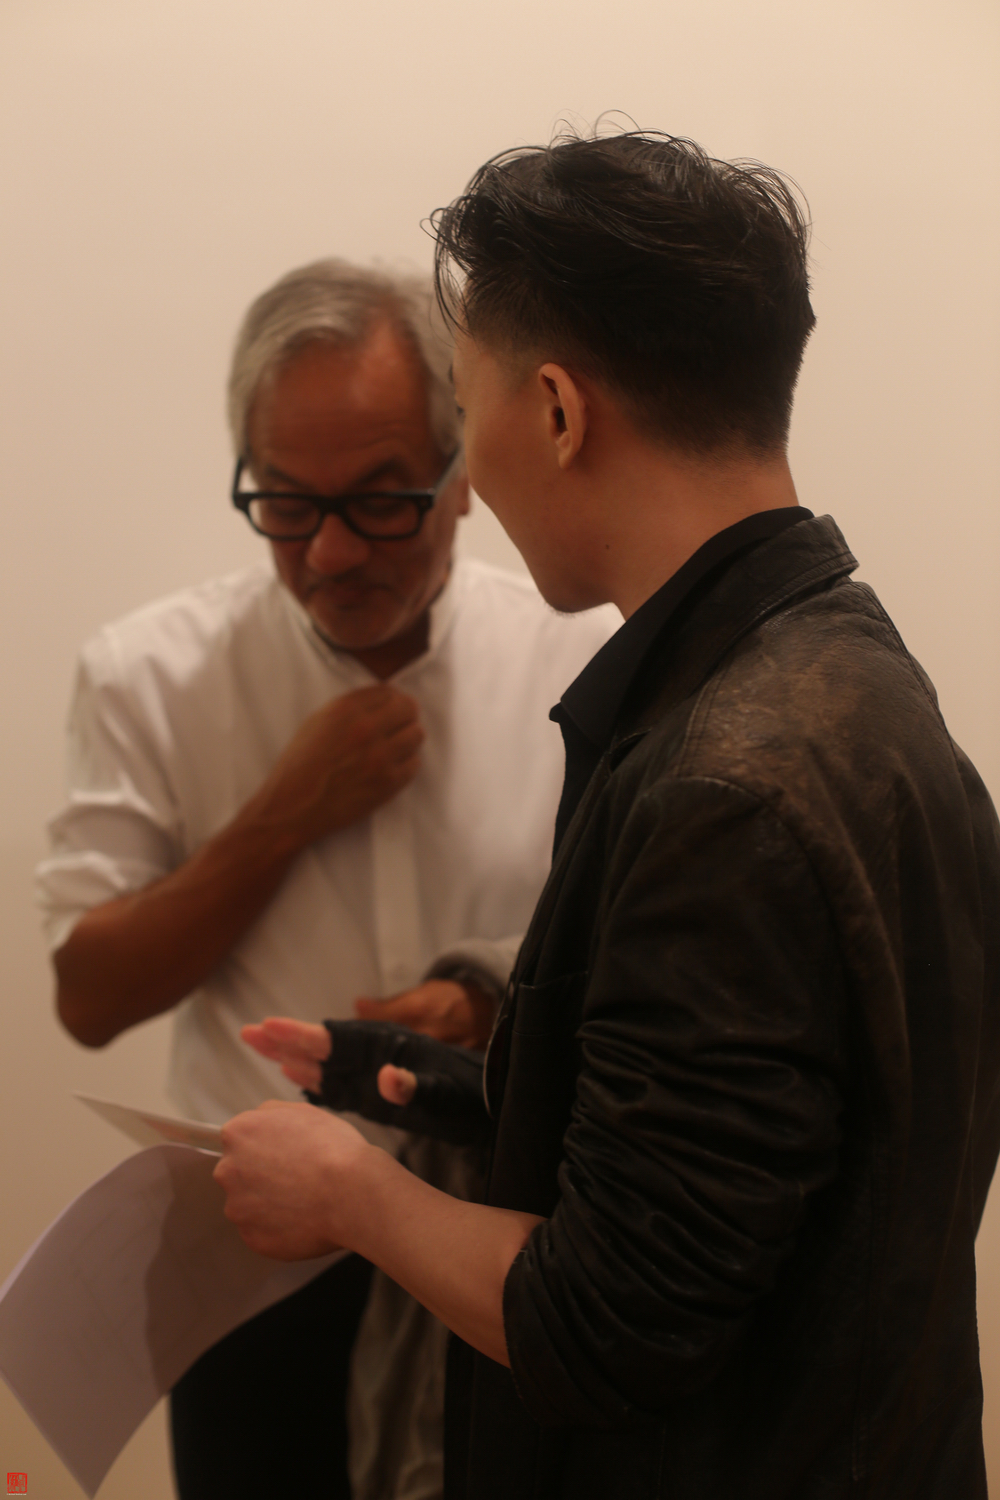 michael_andrew_law_anish_kapoor_10_resize